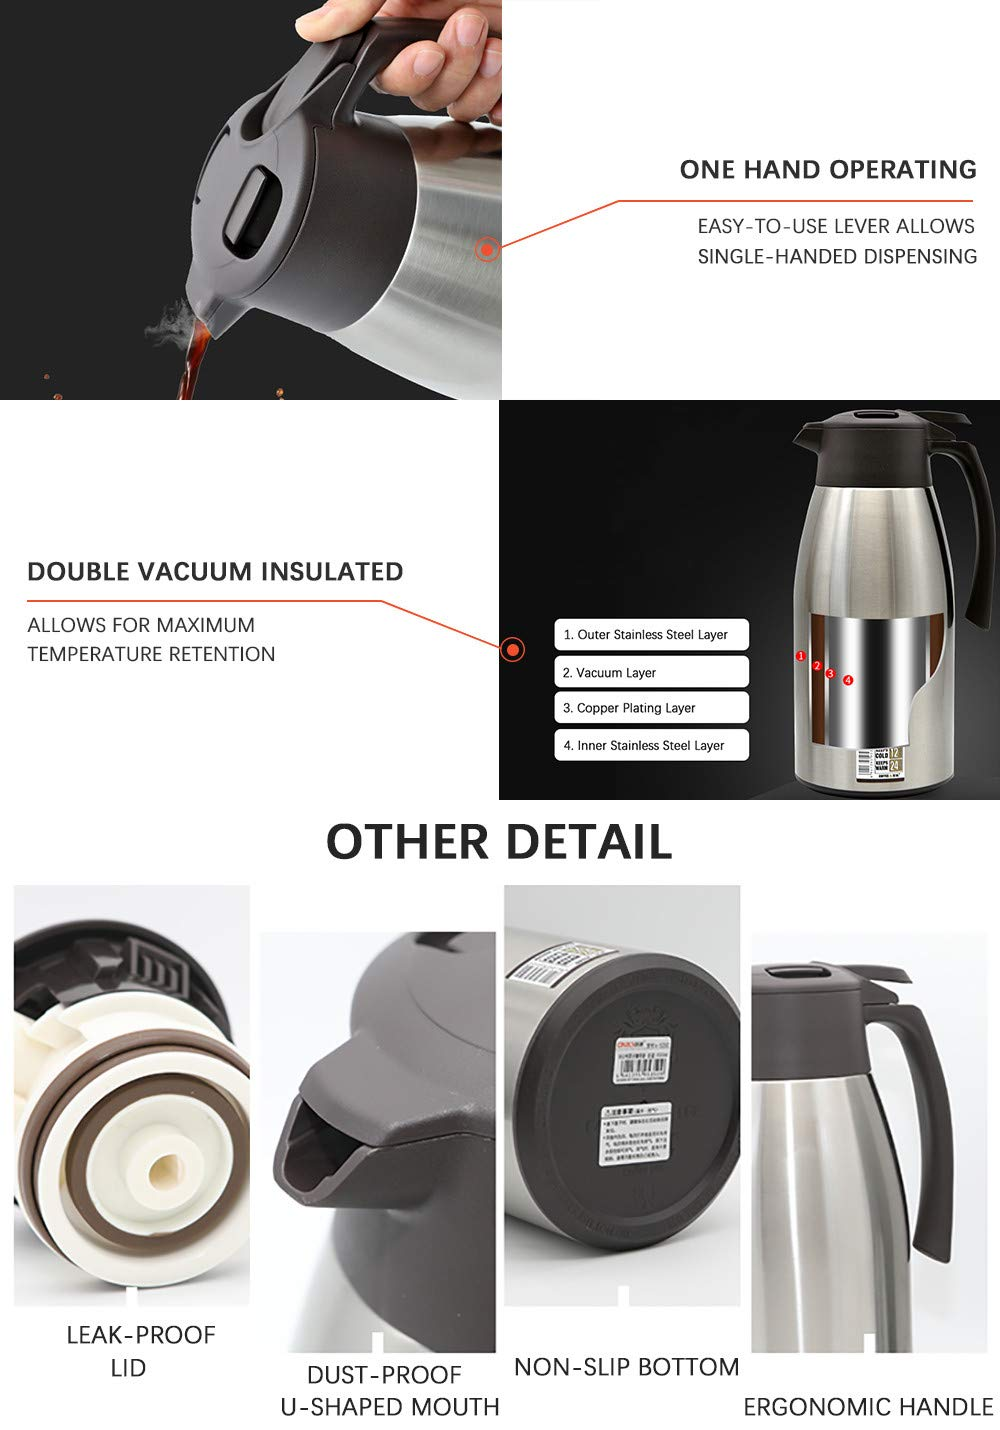 Premium Double Walled Vacuum Thermos Flask for Juice//Milk//Tea LIVINGbasics/™ 12 Hour Heat Retention Silver 1.5L Stainless Steel Thermal Coffee Carafe